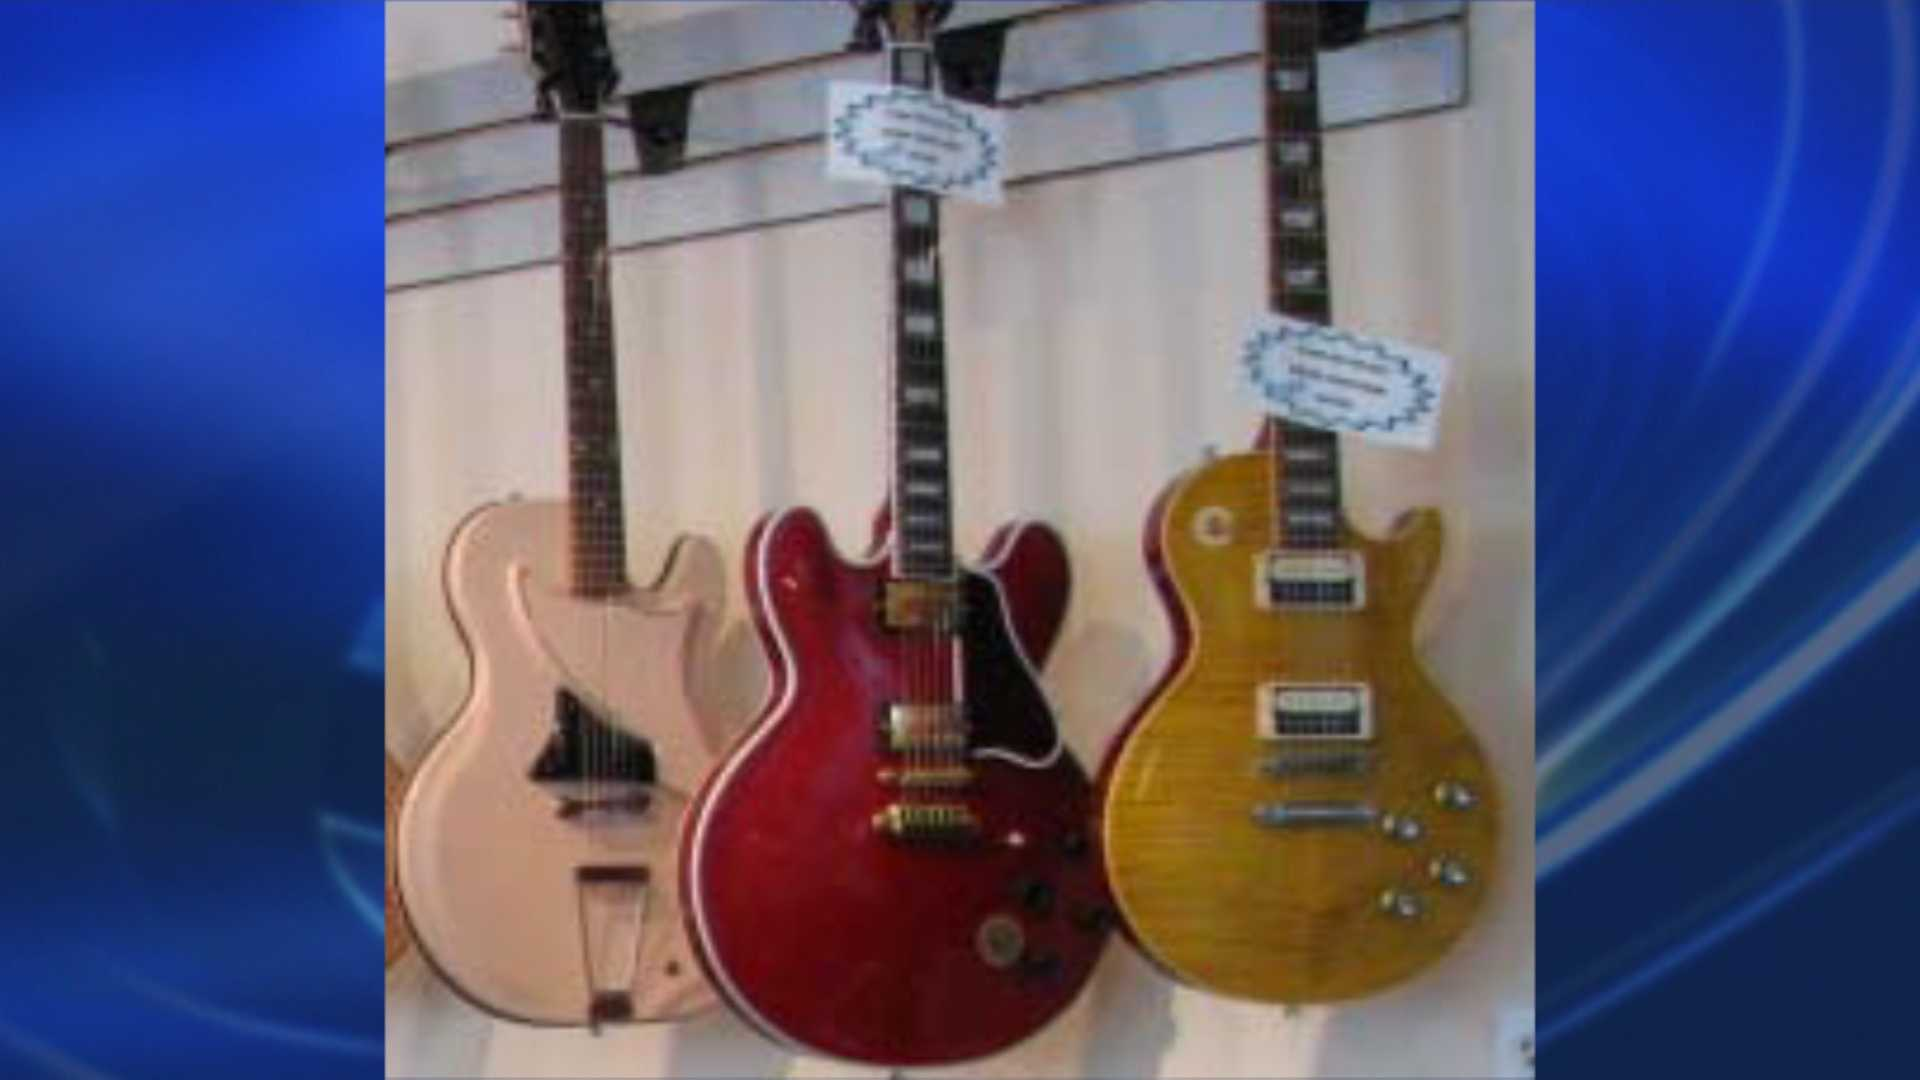 Lebanon Police are looking for these three guitars taken from Bear Hollow Vintage Guitars.